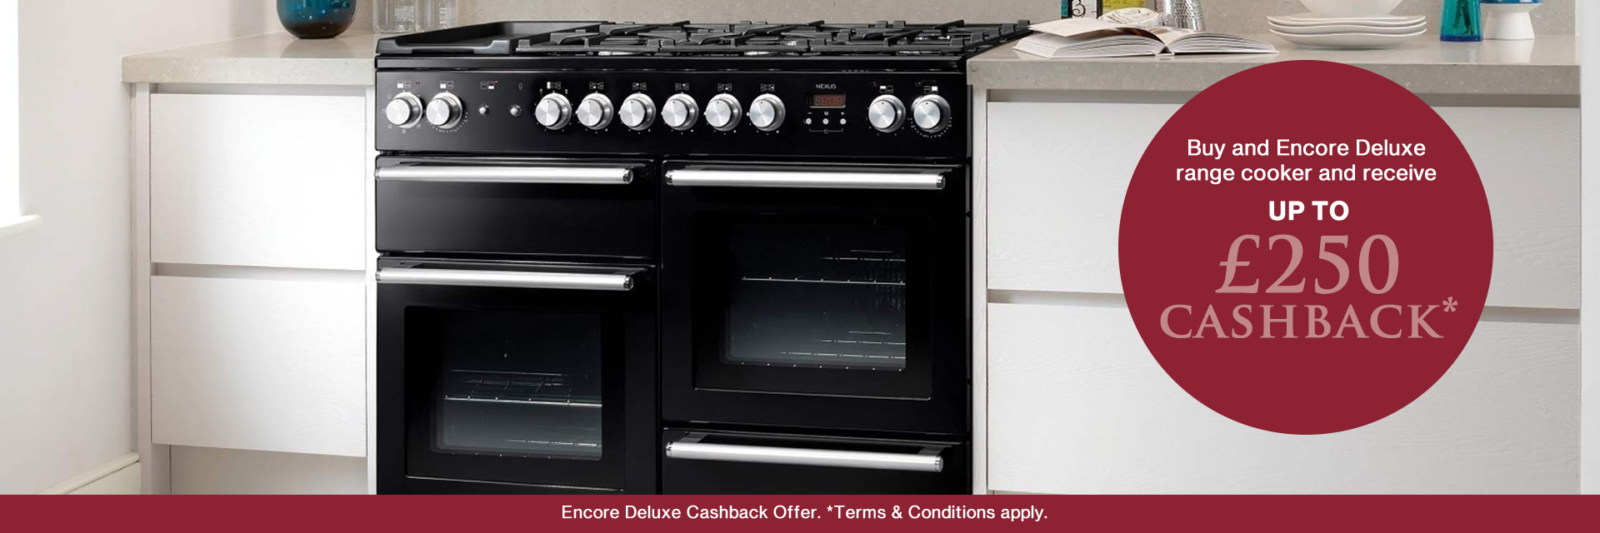 Rangemaster Encore Deluxe Cashback Offer